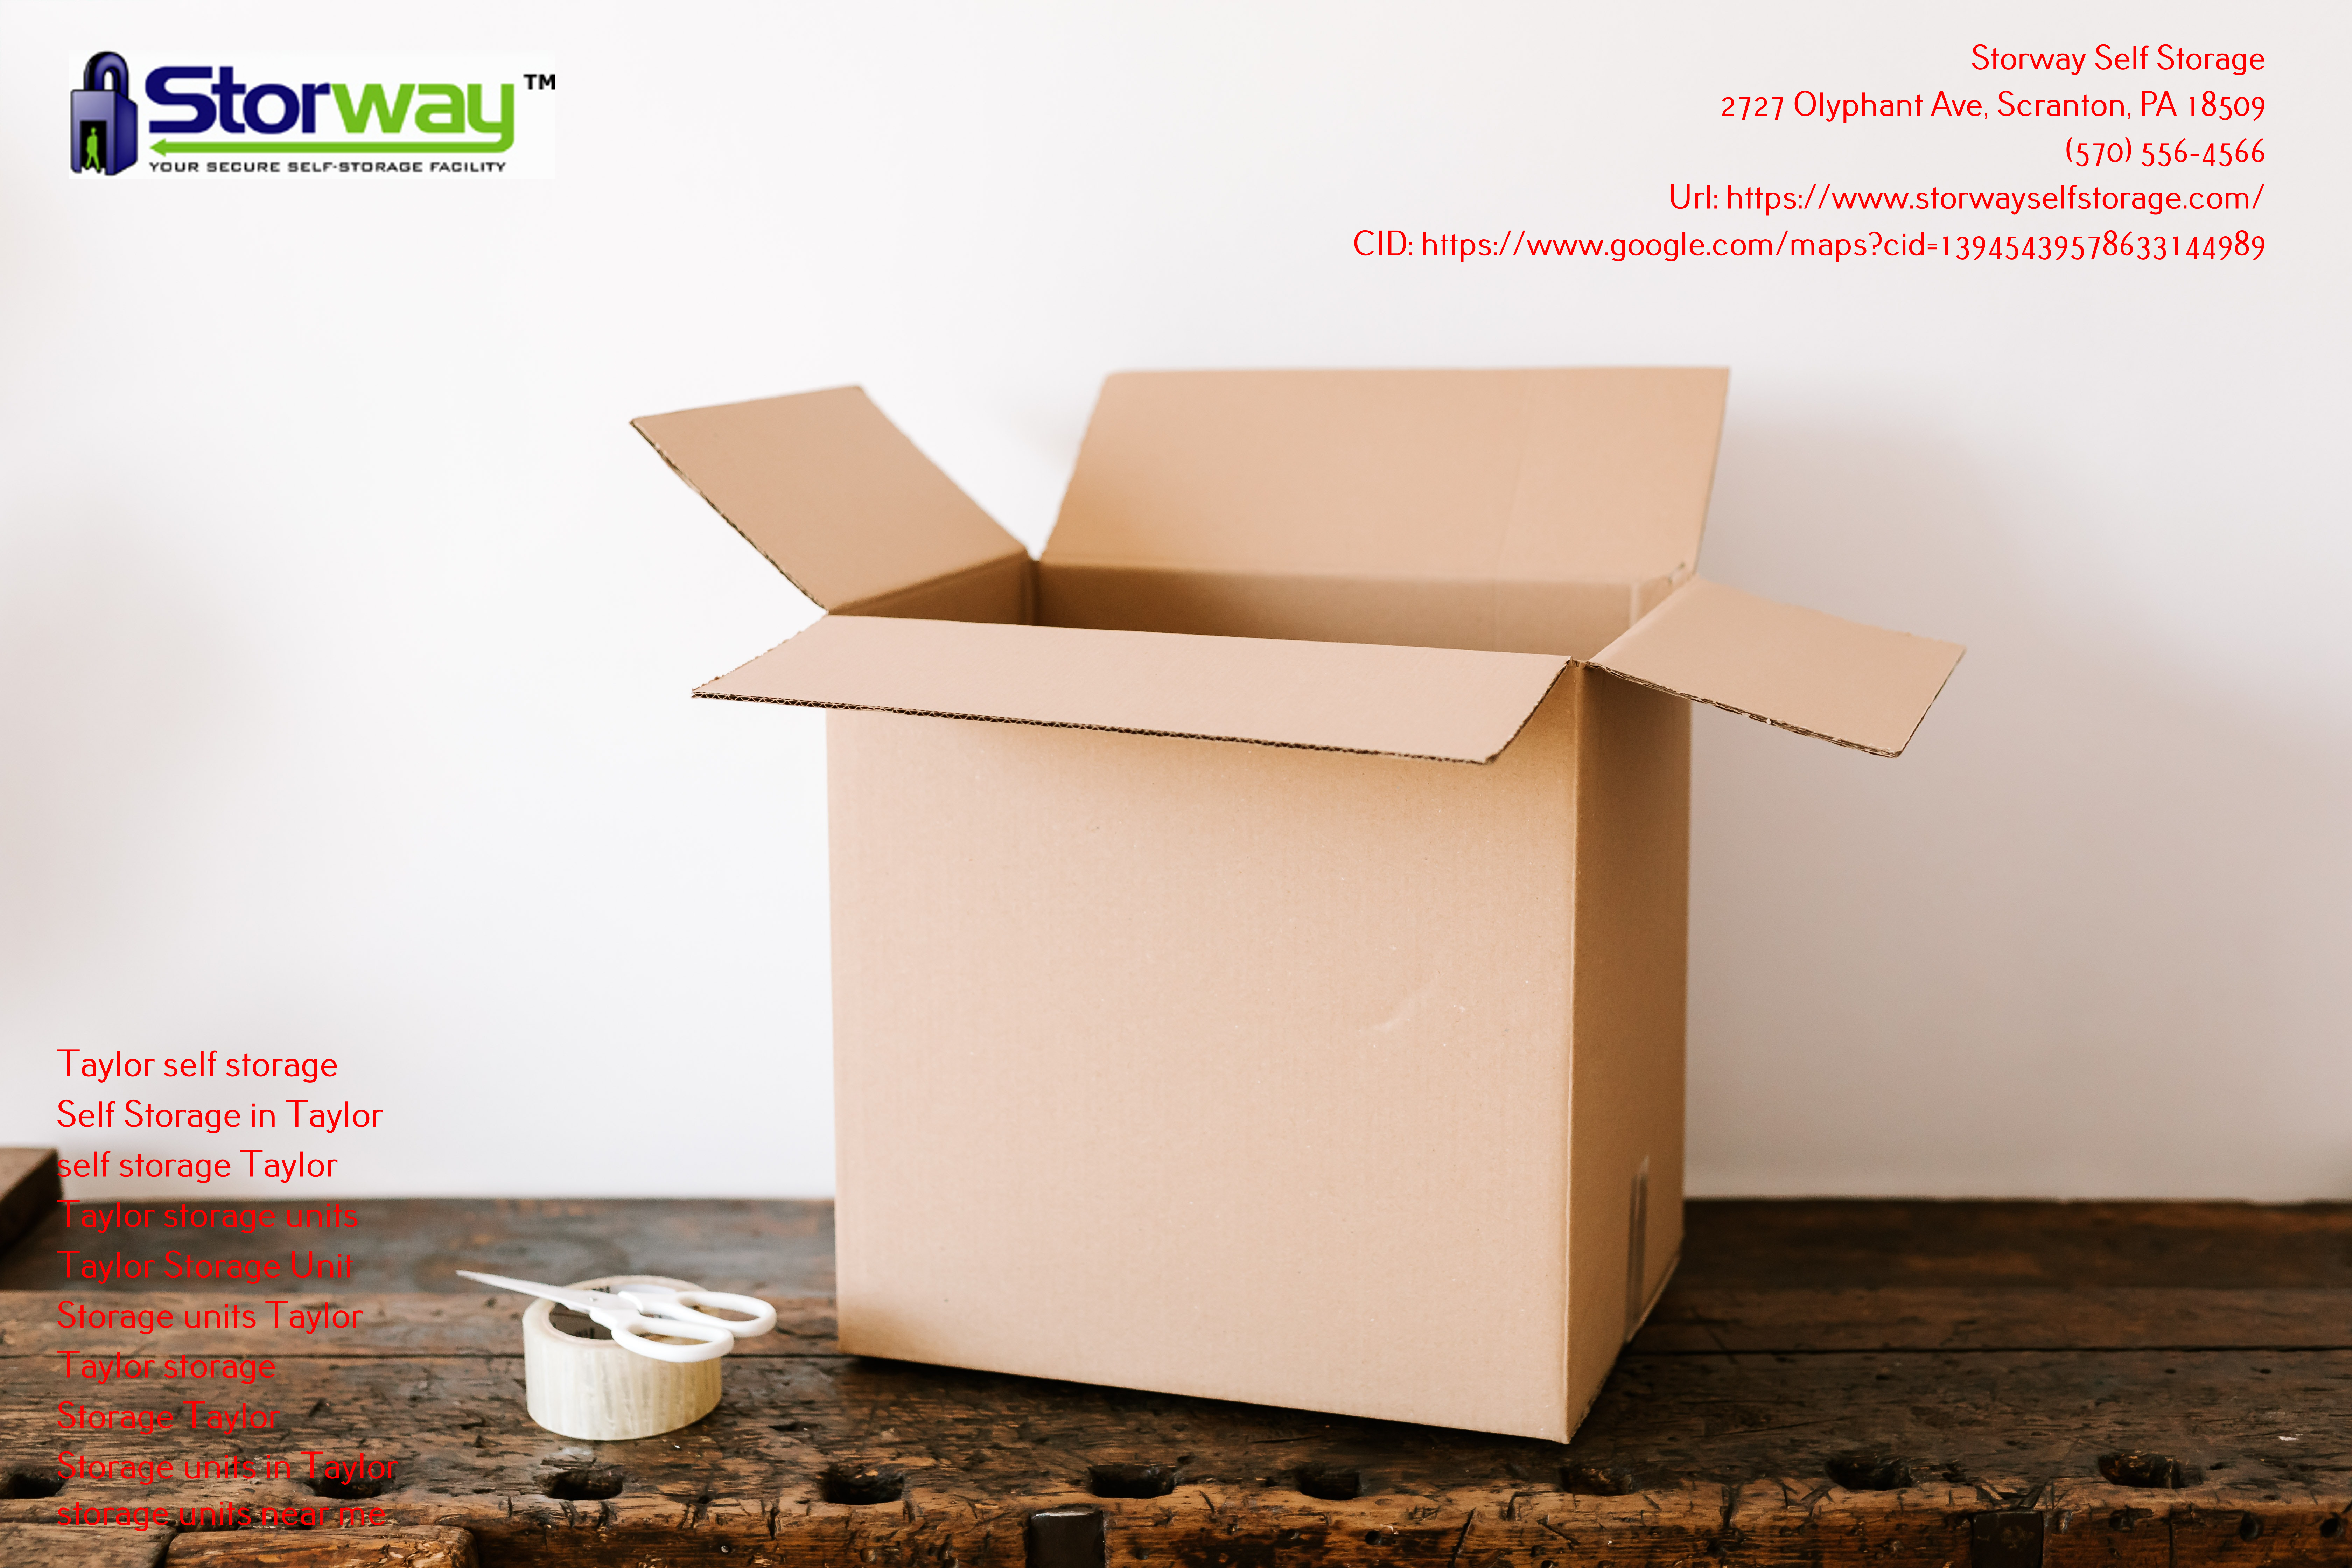 Self Storages in Scranton, Pennsylvania, is The Best Choice for You!